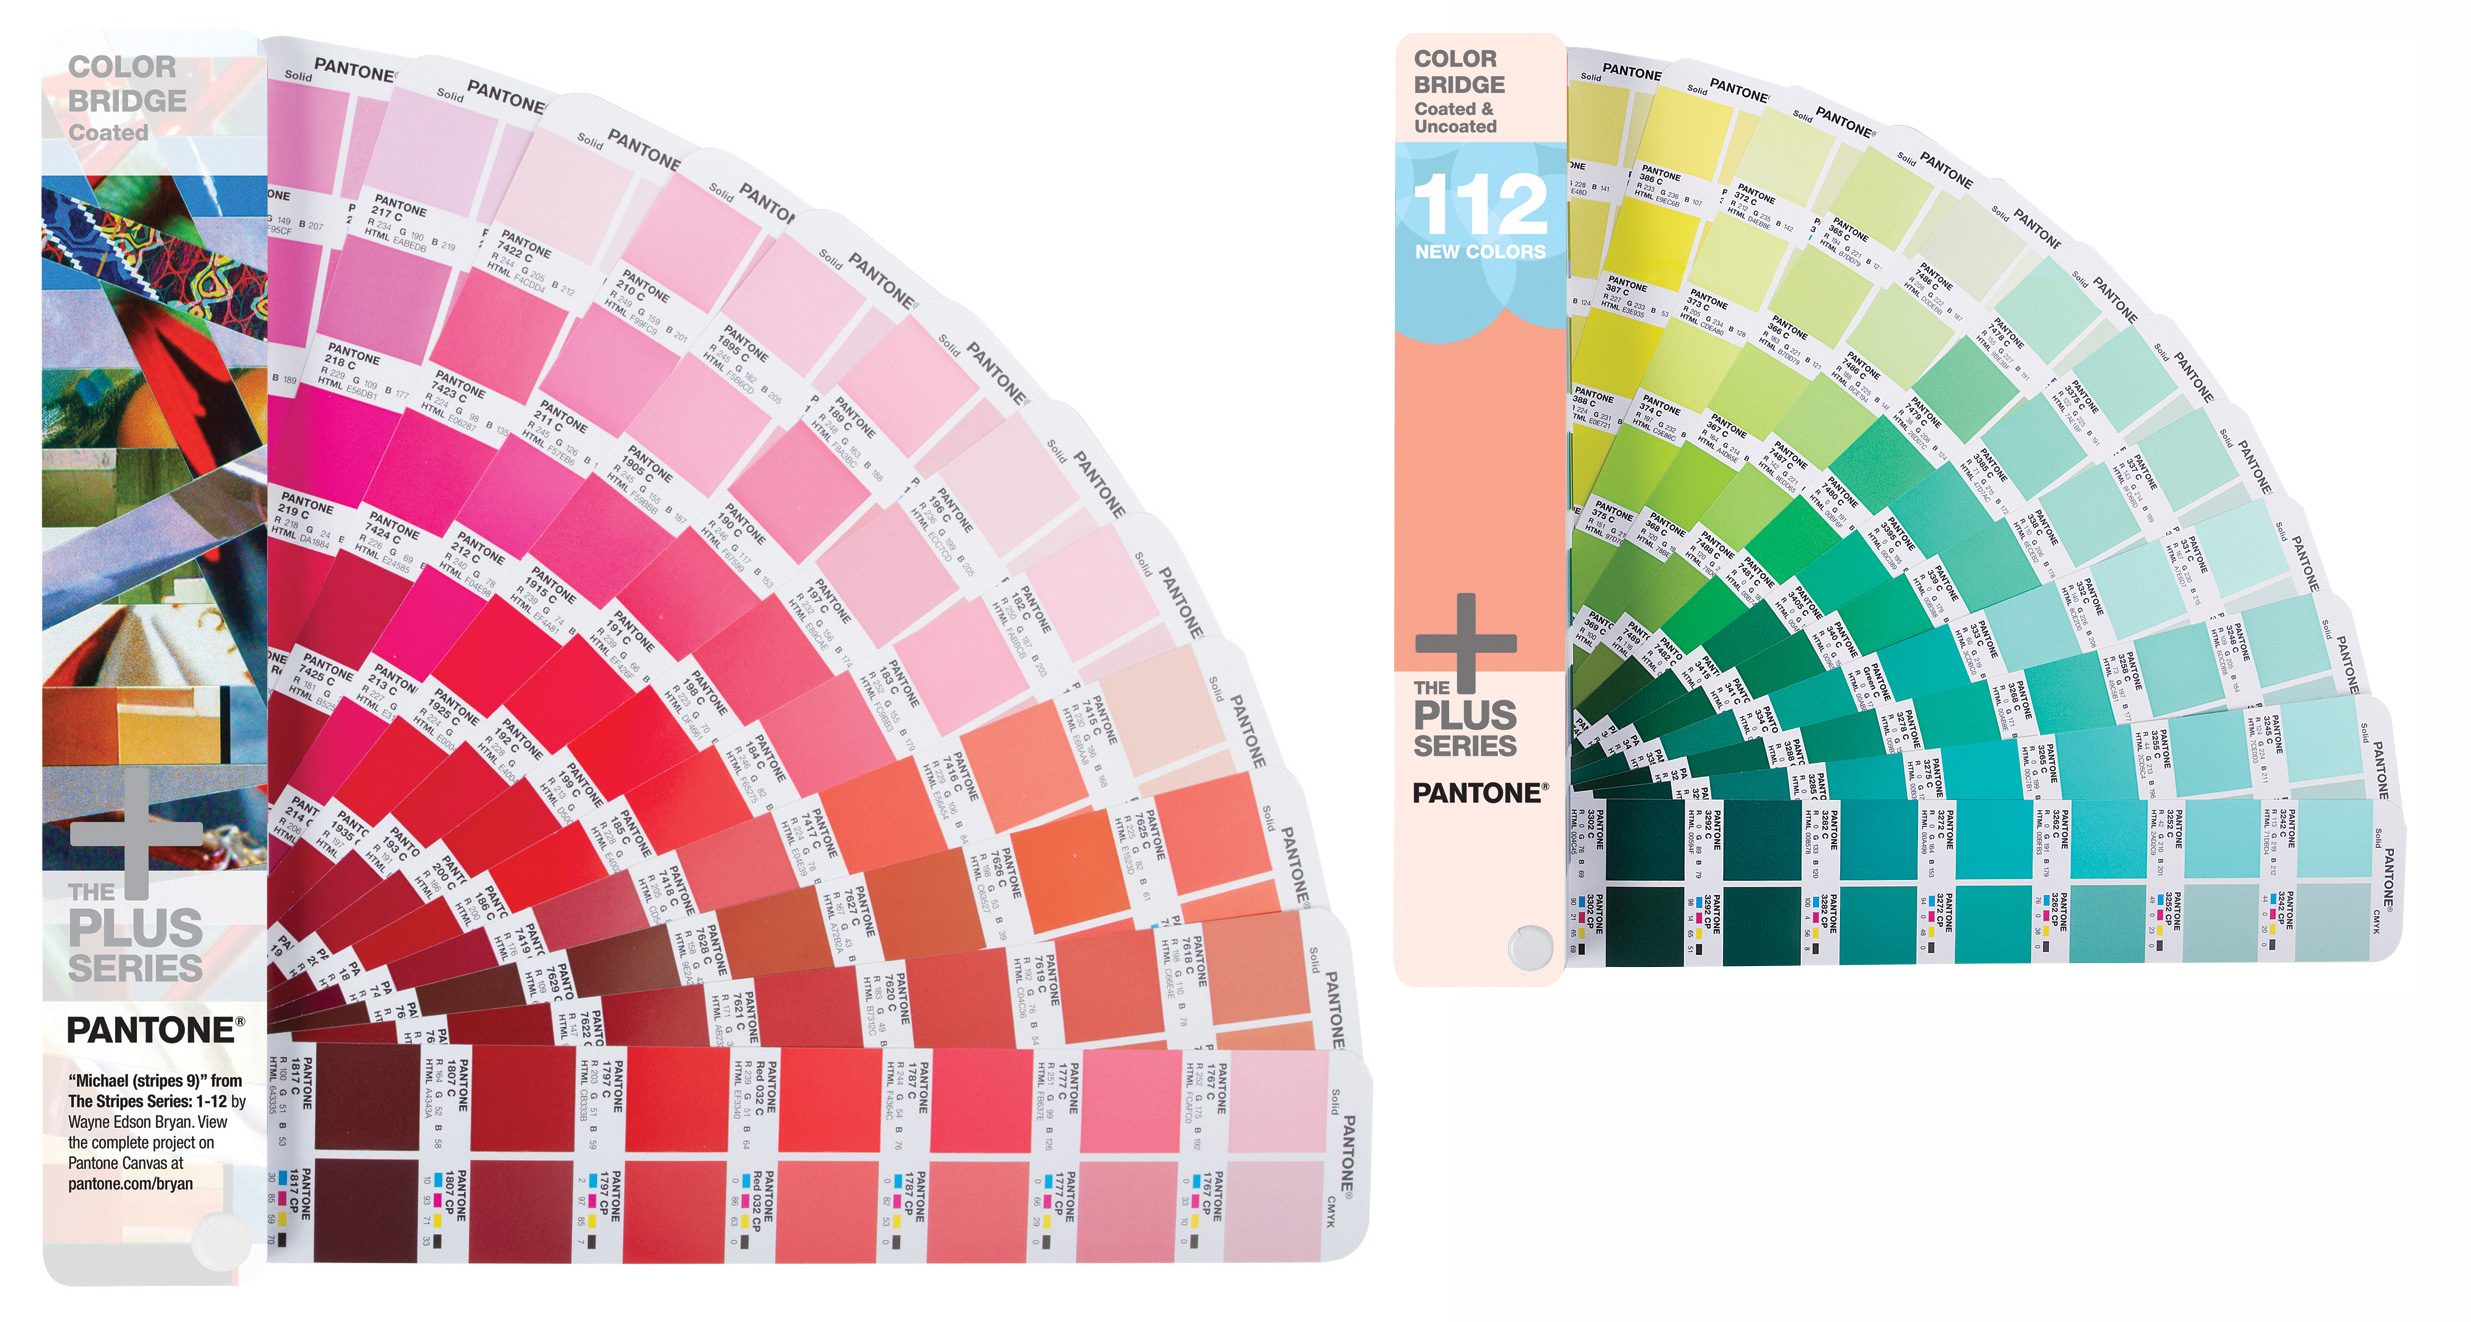 Pantone Color Bridge Uncoated GG6104N